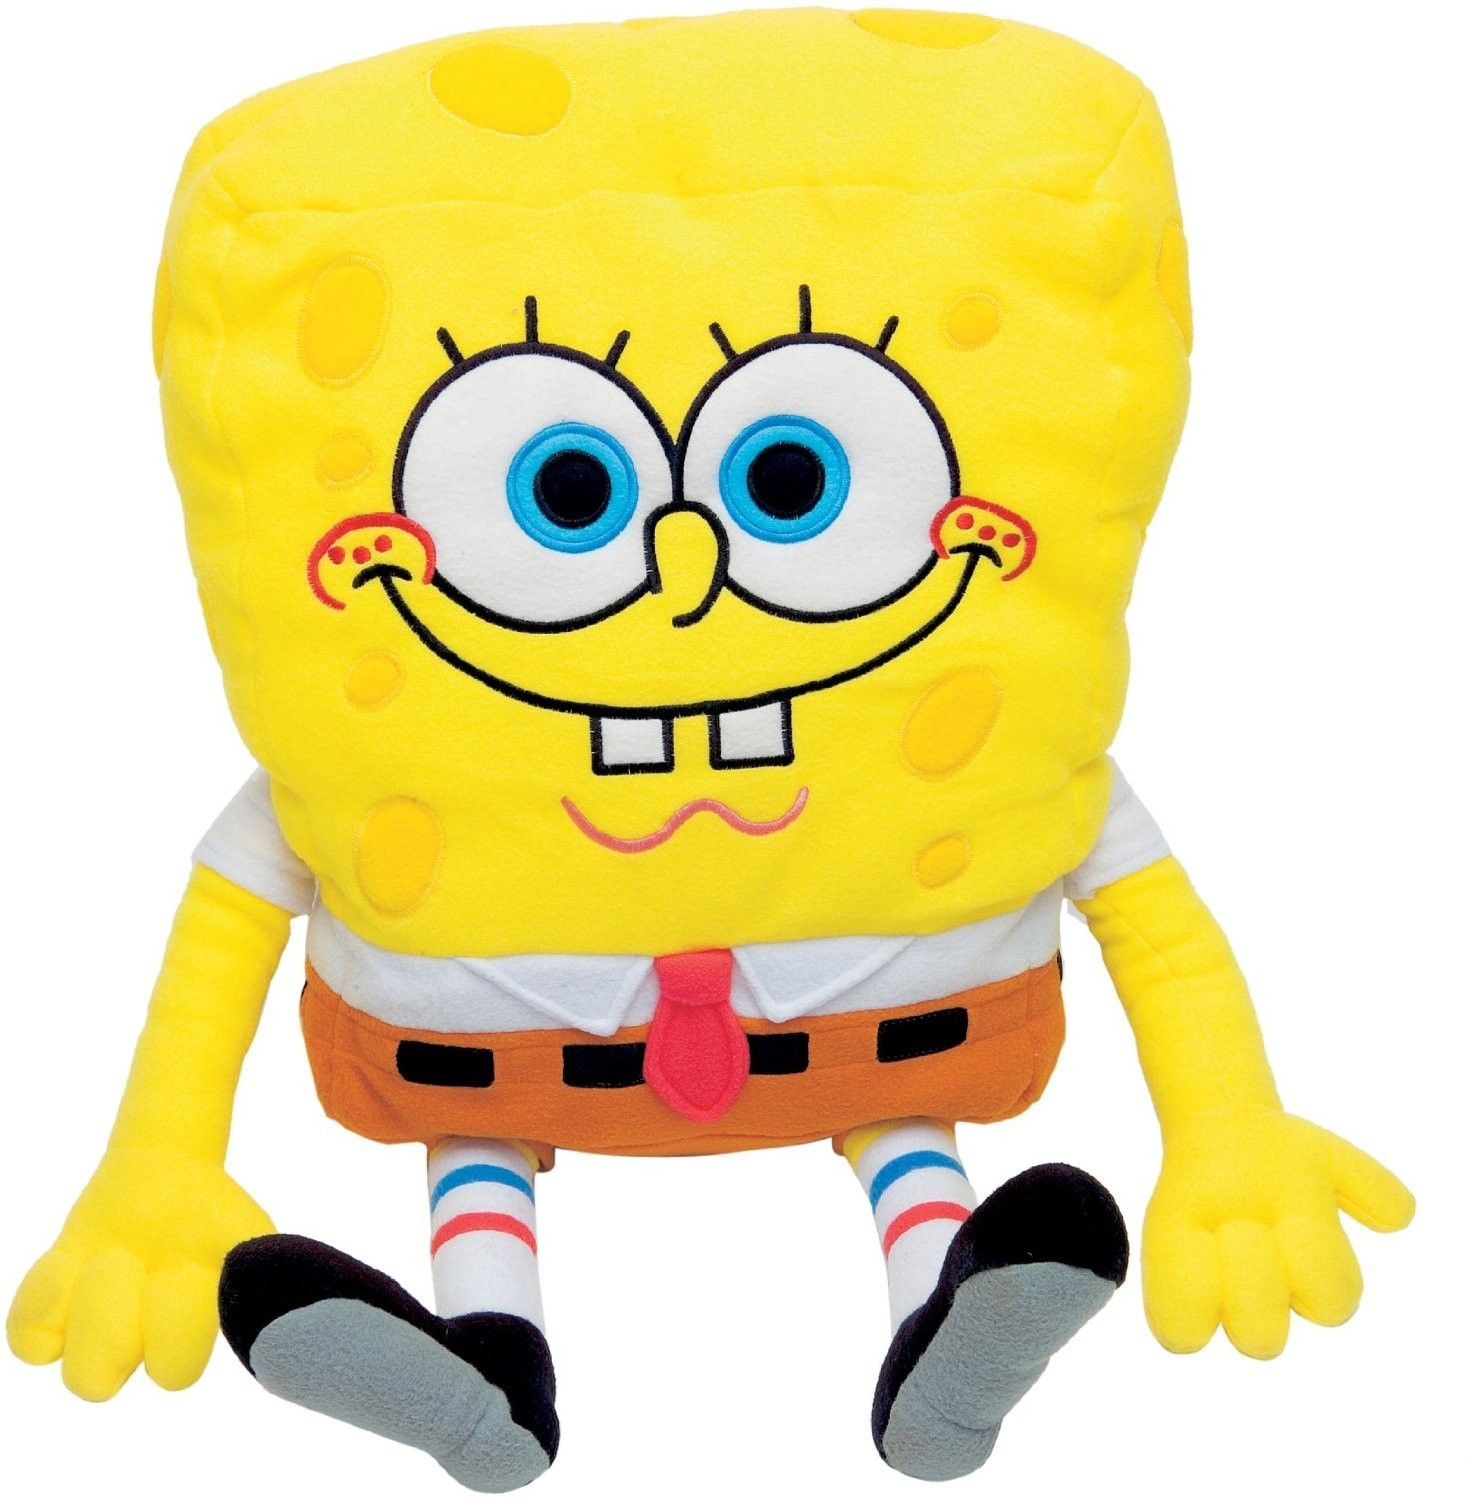 S Official Spongebob Squarepants Plush Soft Cuddle Doll Toys Stuffed Animal 7/""